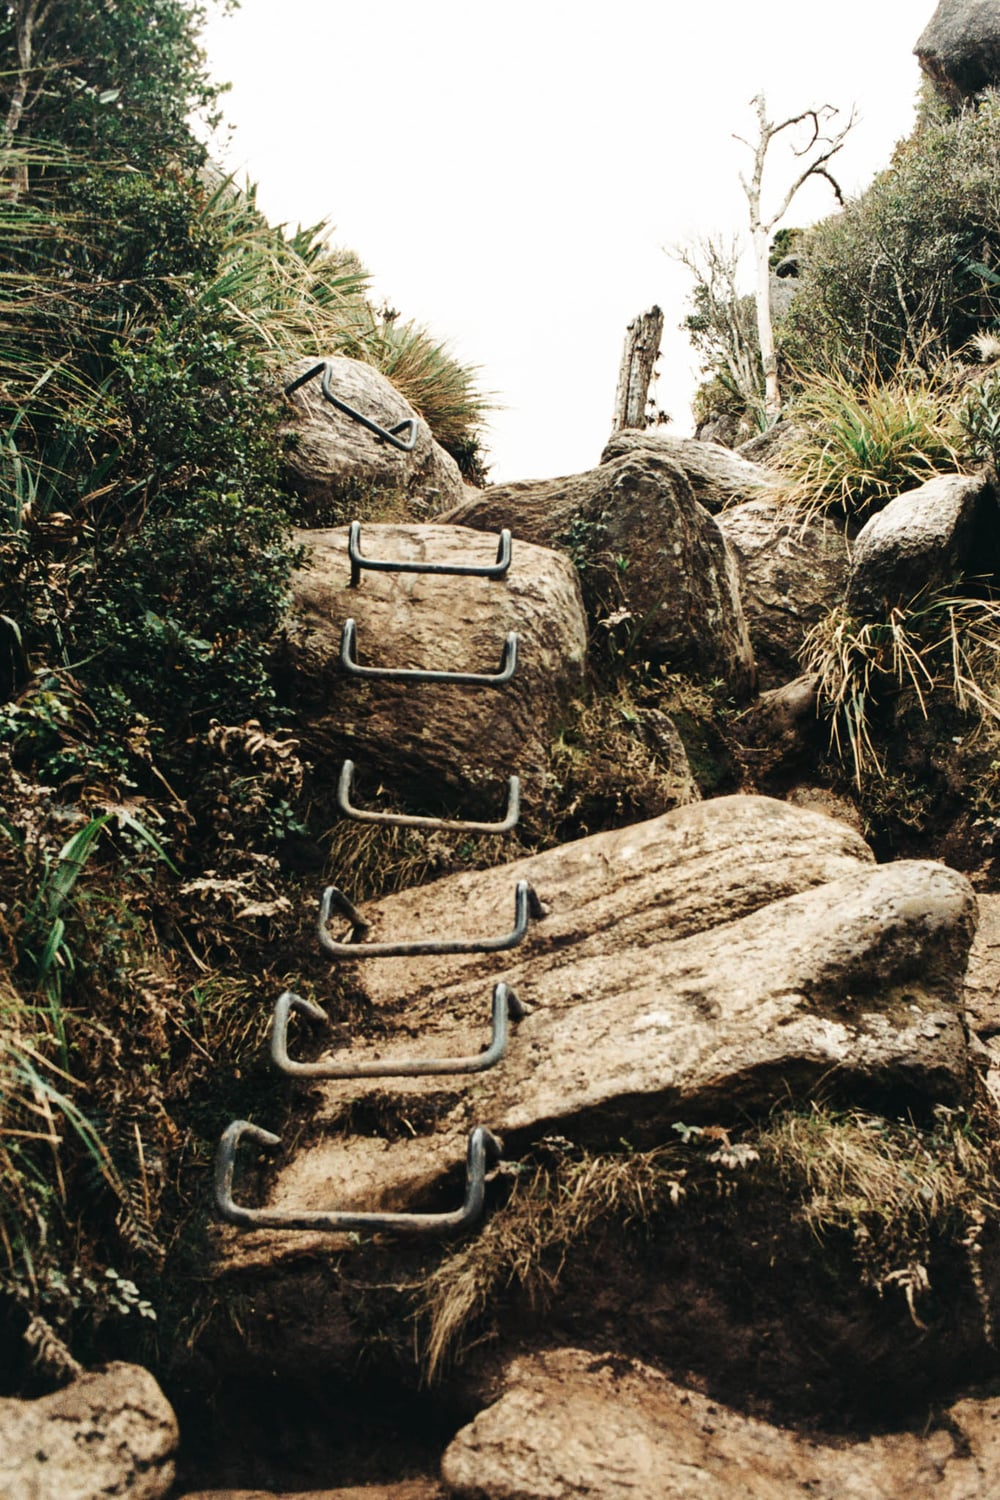 Metal rungs to climb the rocks